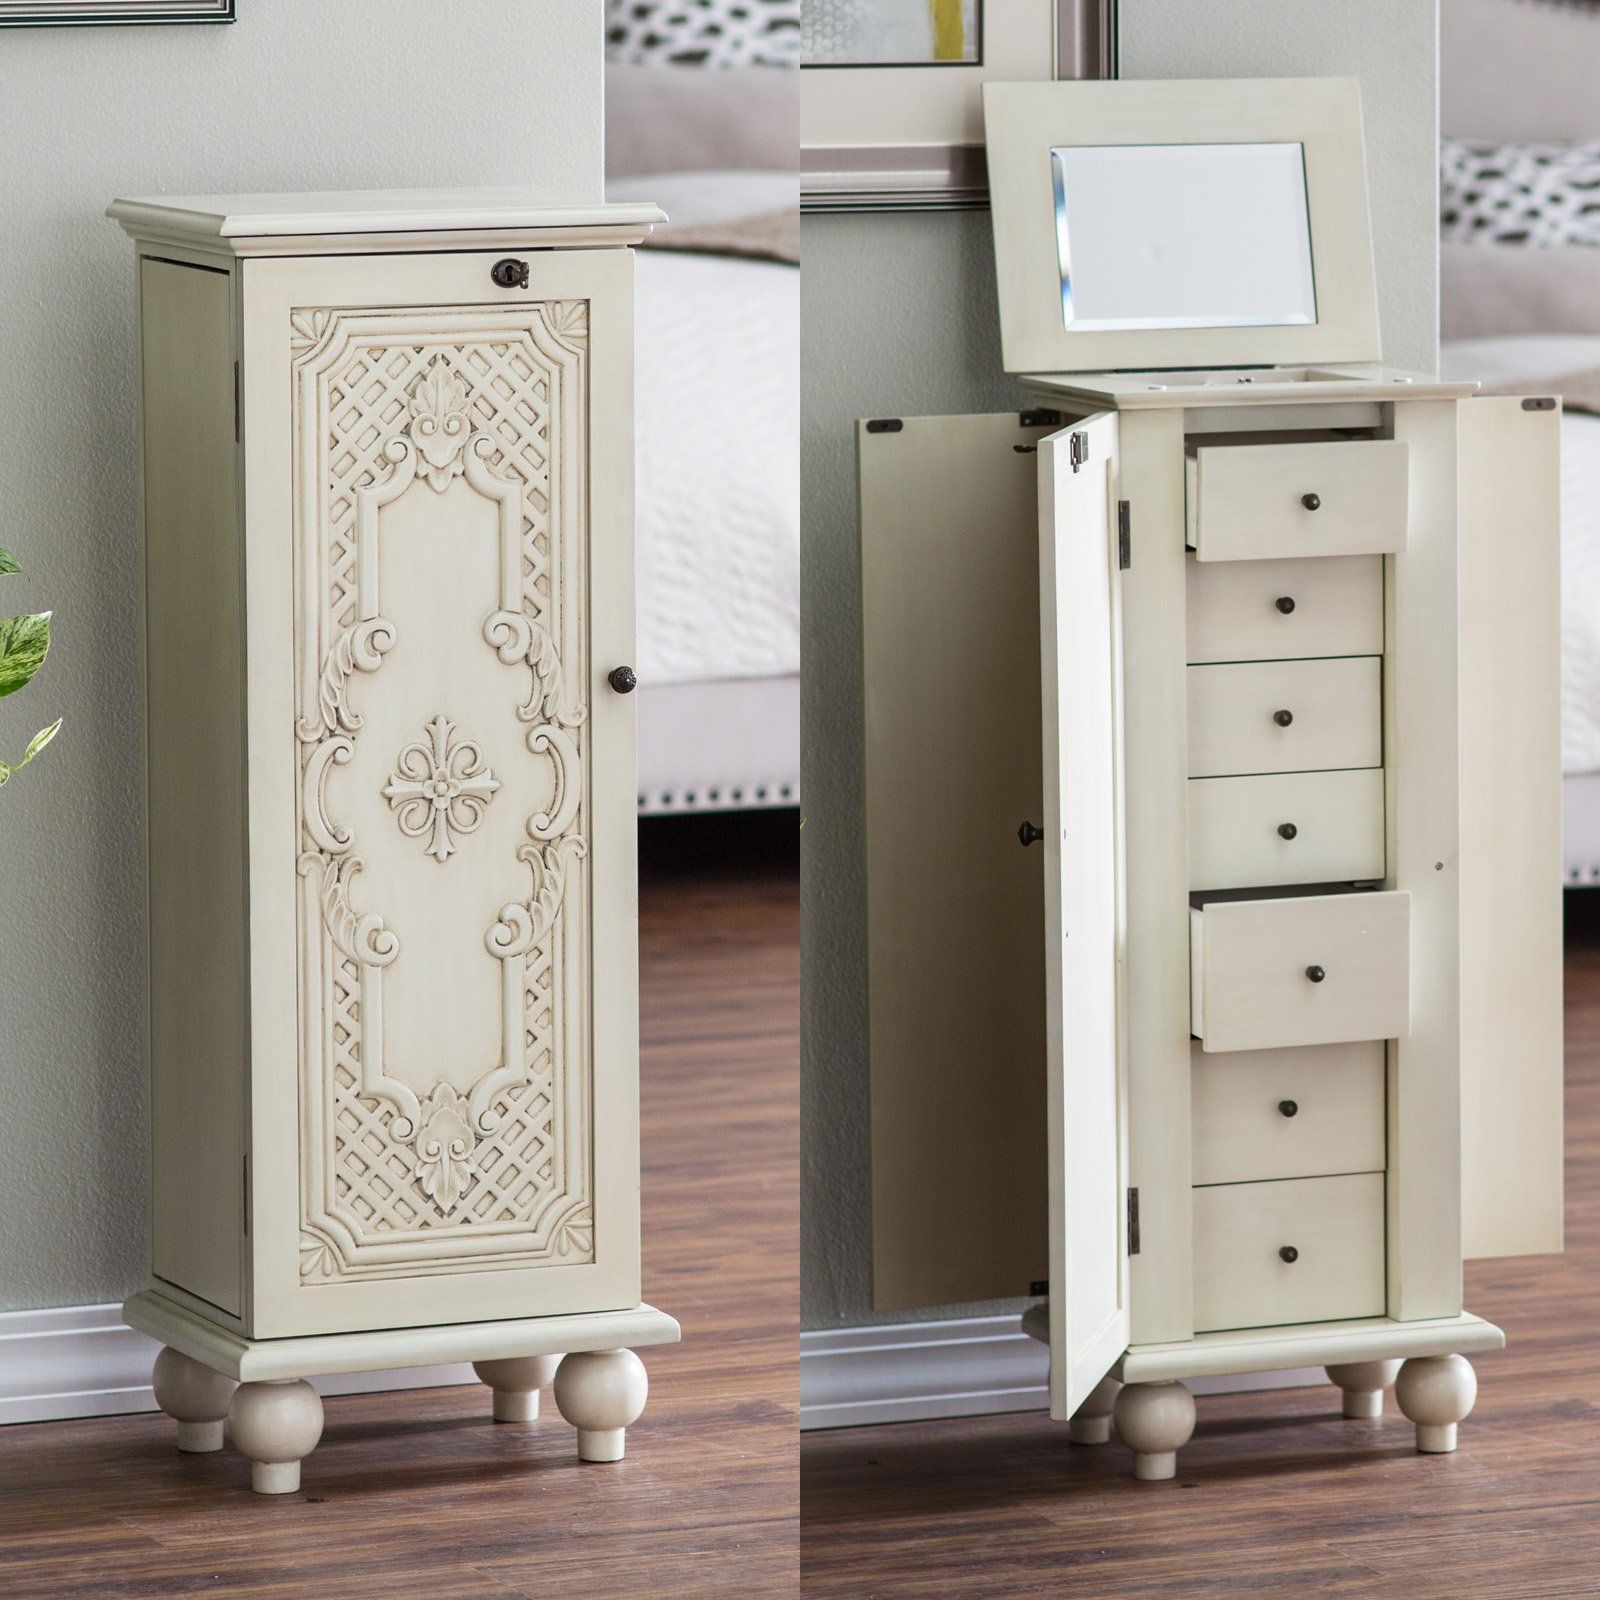 Le Meilleur Belham Living Locking Ornate Door Jewelry Armoire From Ce Mois Ci